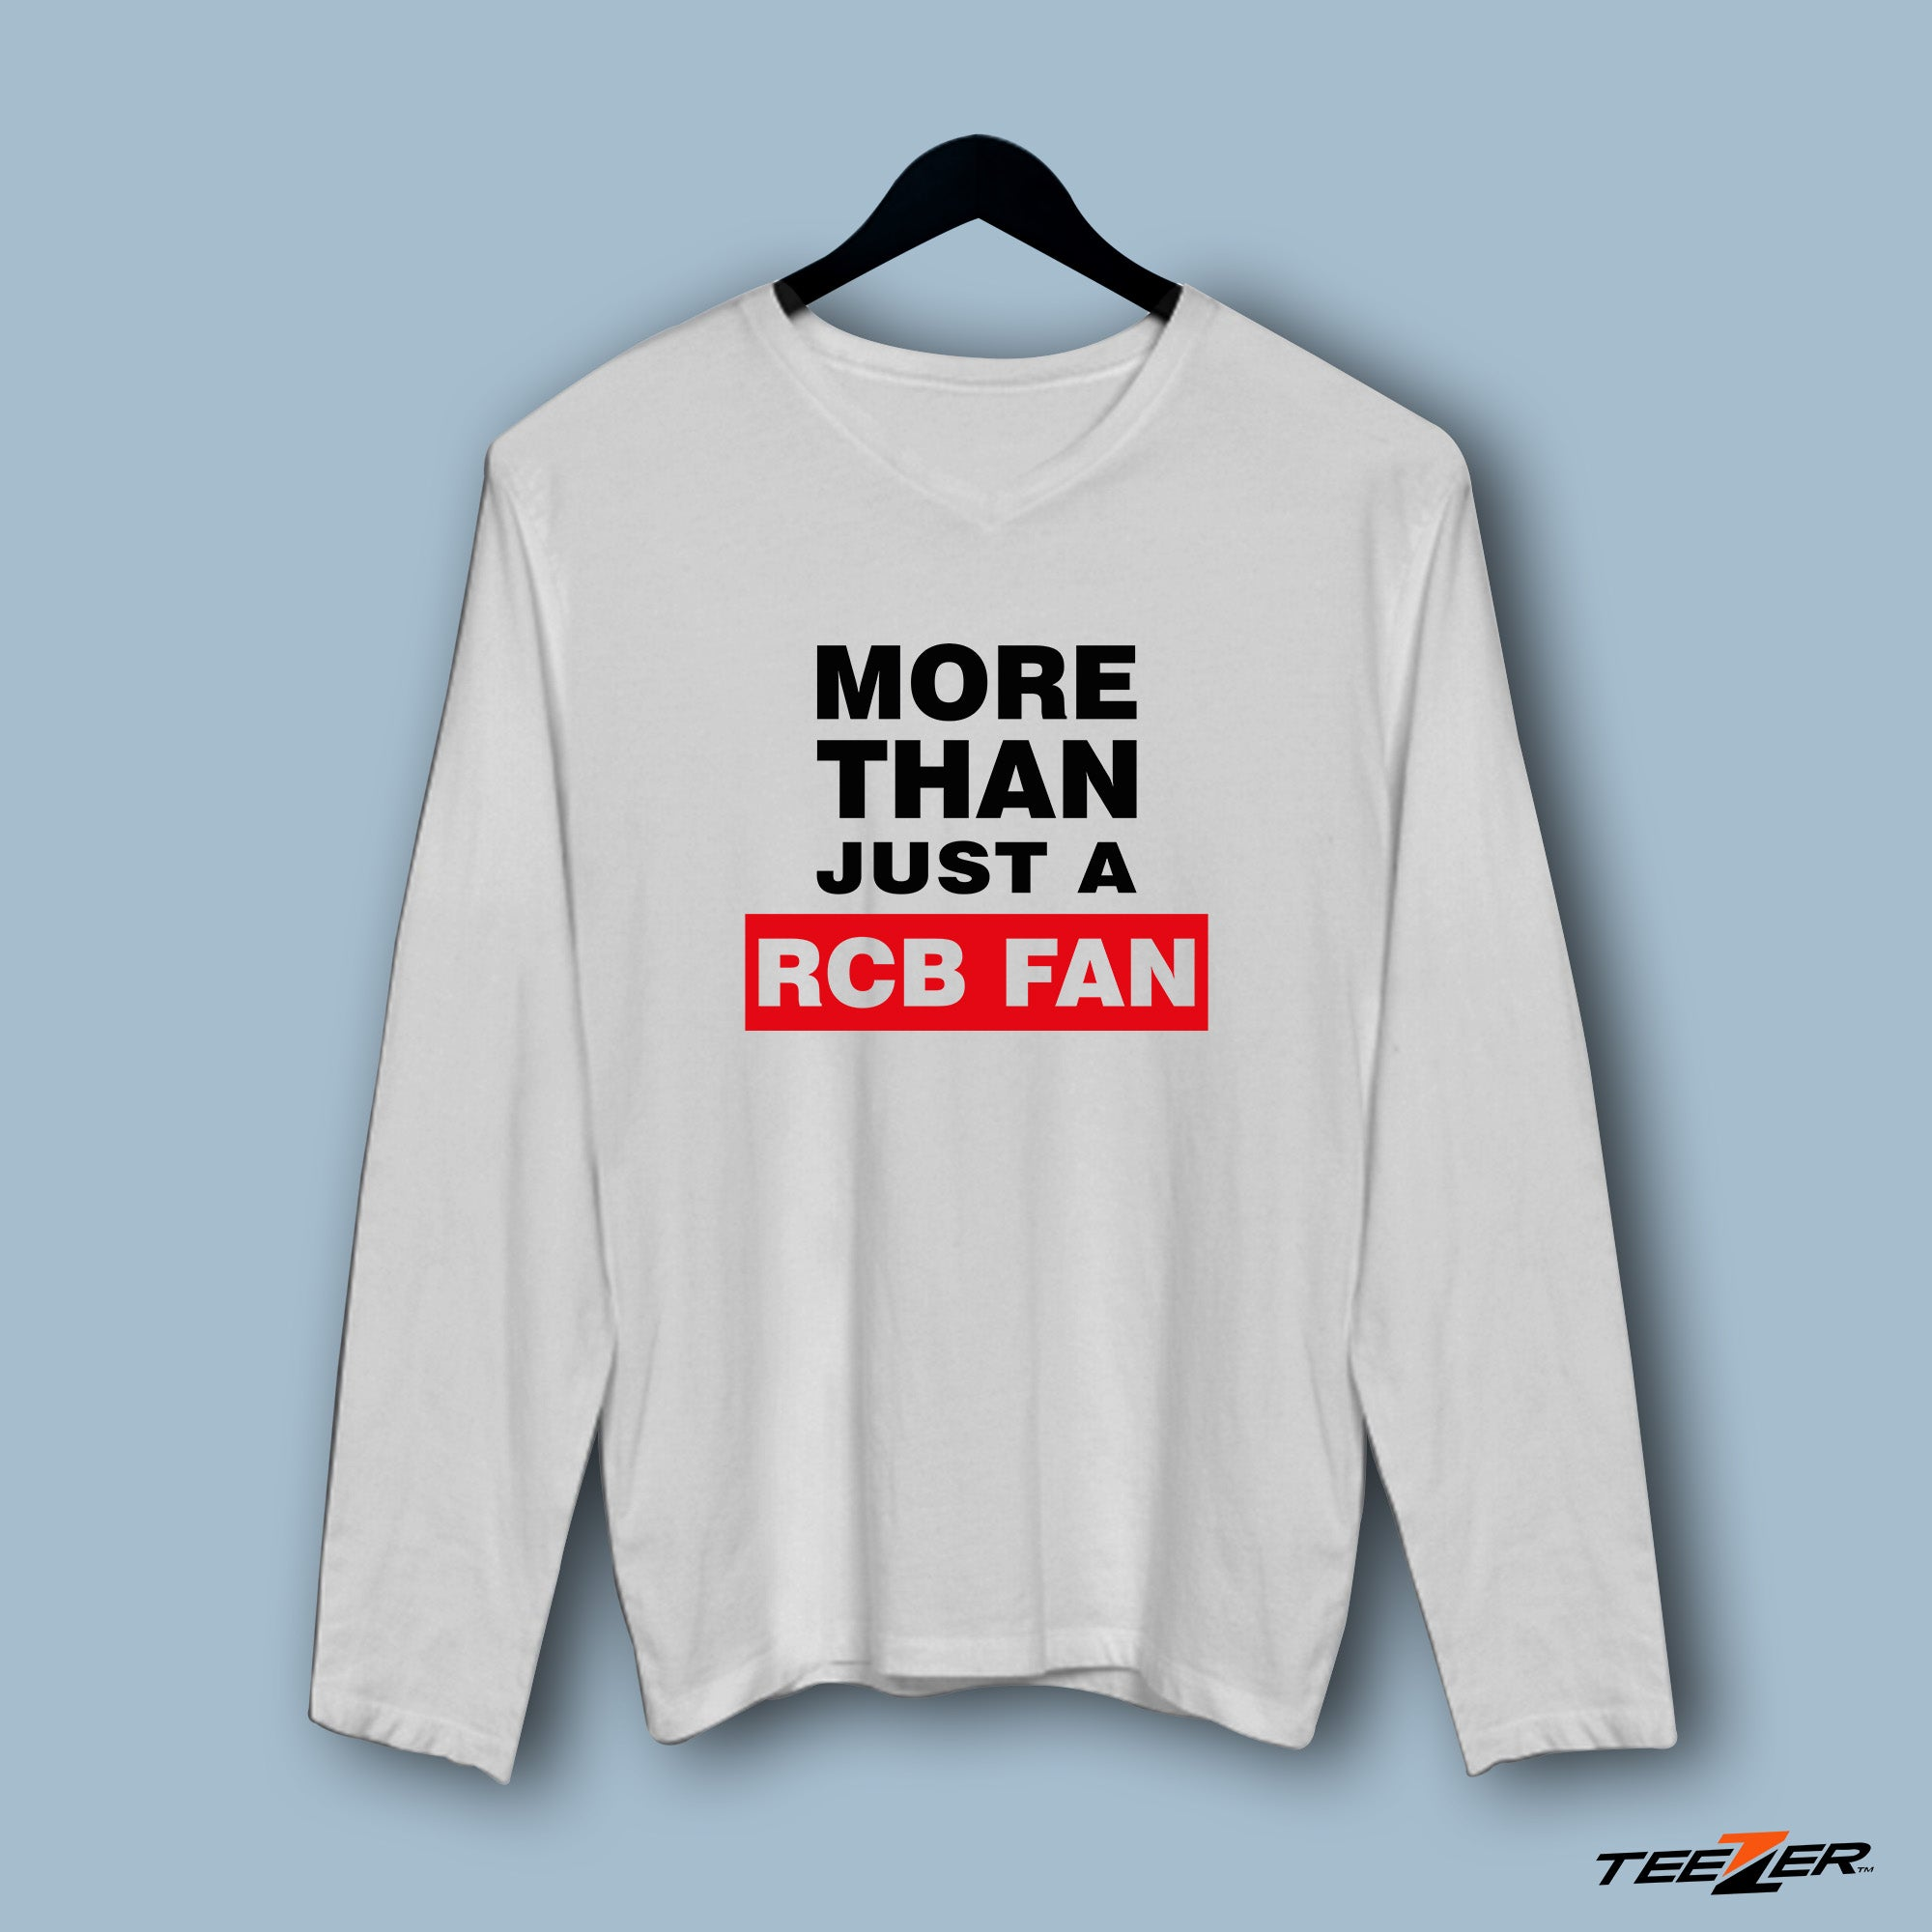 More than just a RCB fan - Full Sleeves